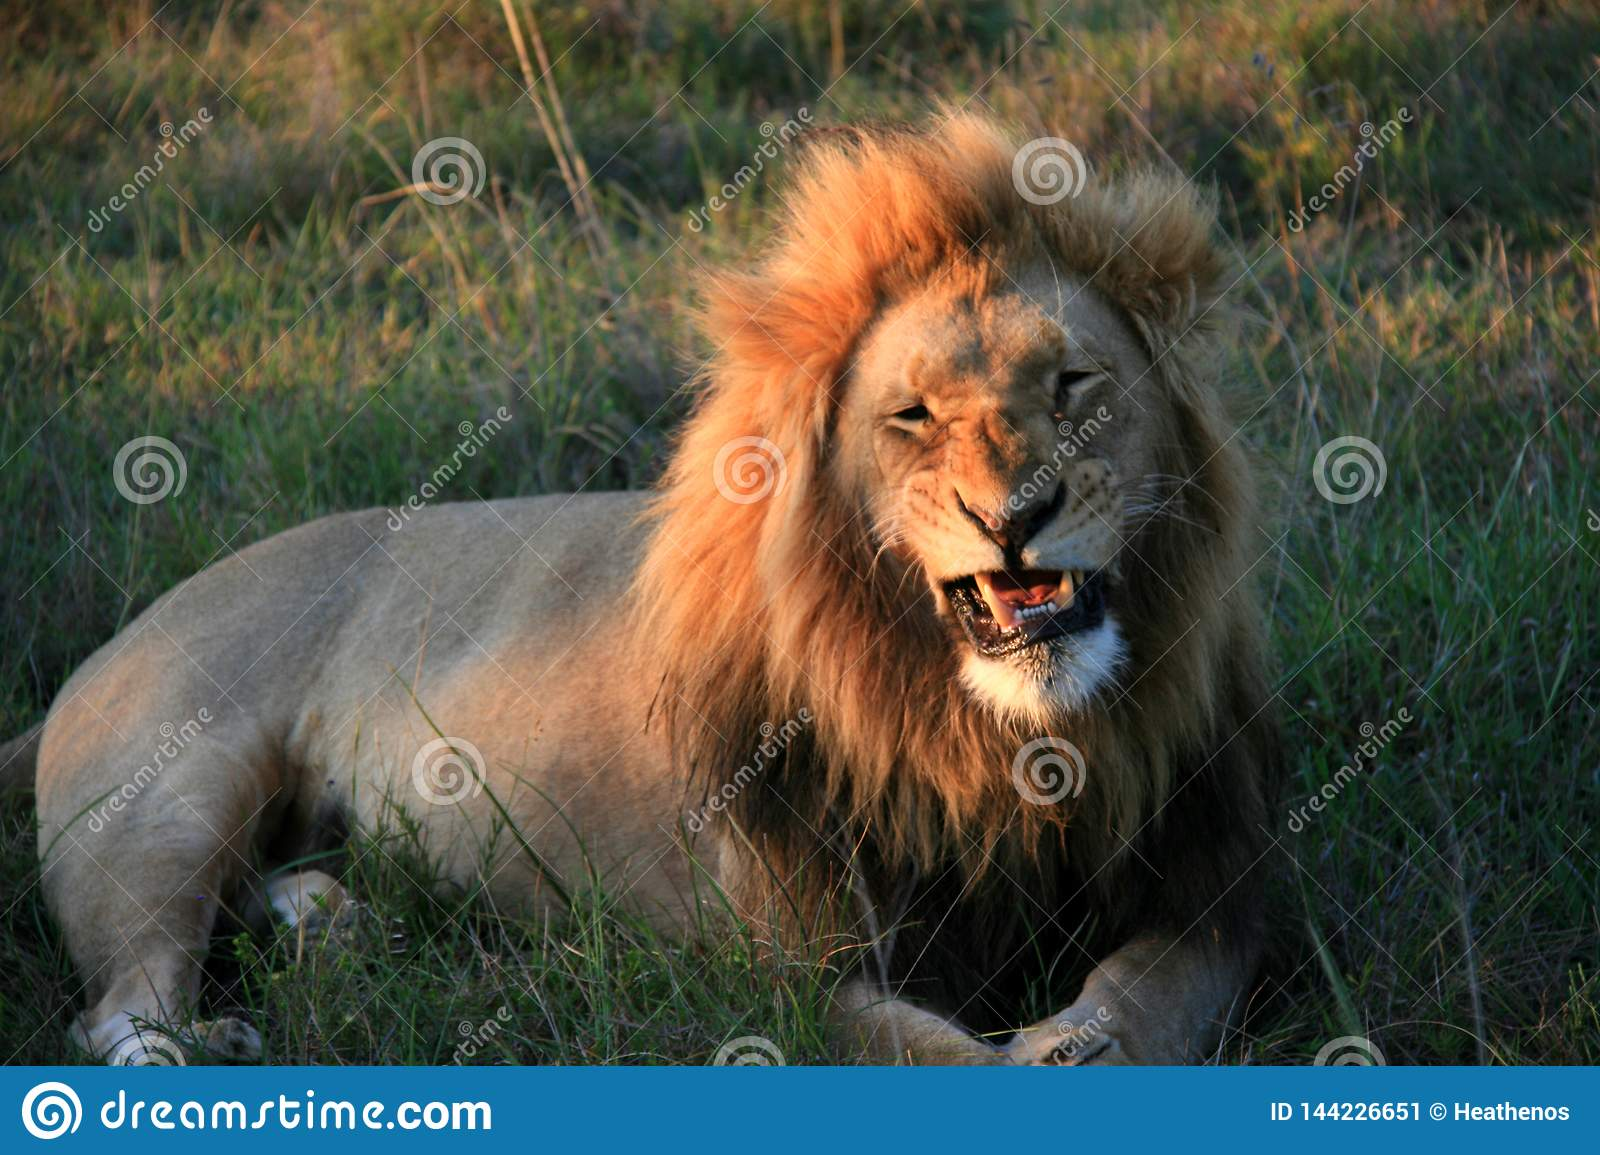 Male lion lying on grass with mouth partially open revealing teeth